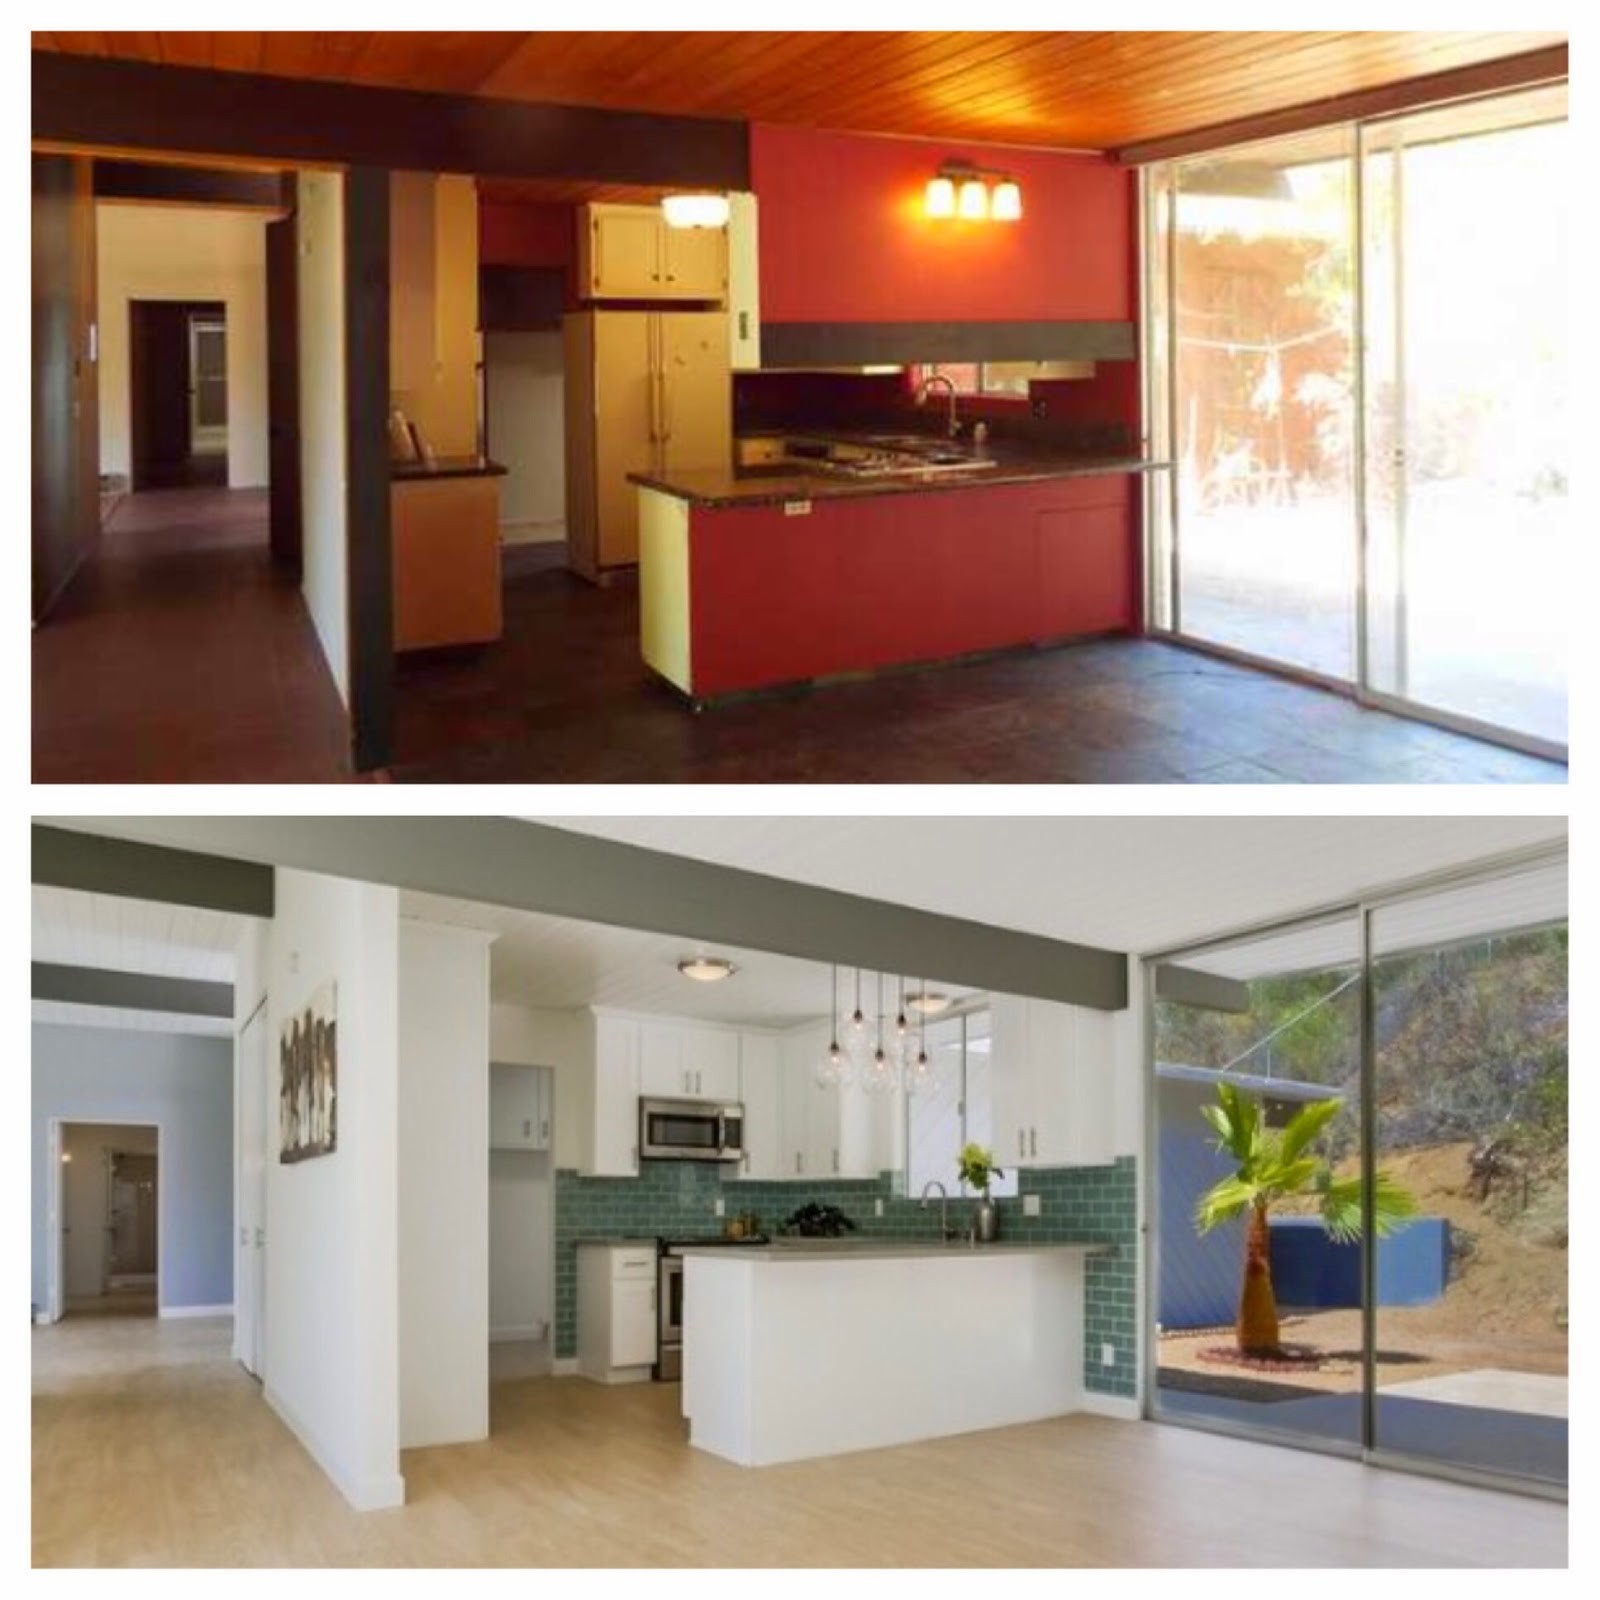 Transformation Tuesday: Mid-Century Modern Home Before & After | San on